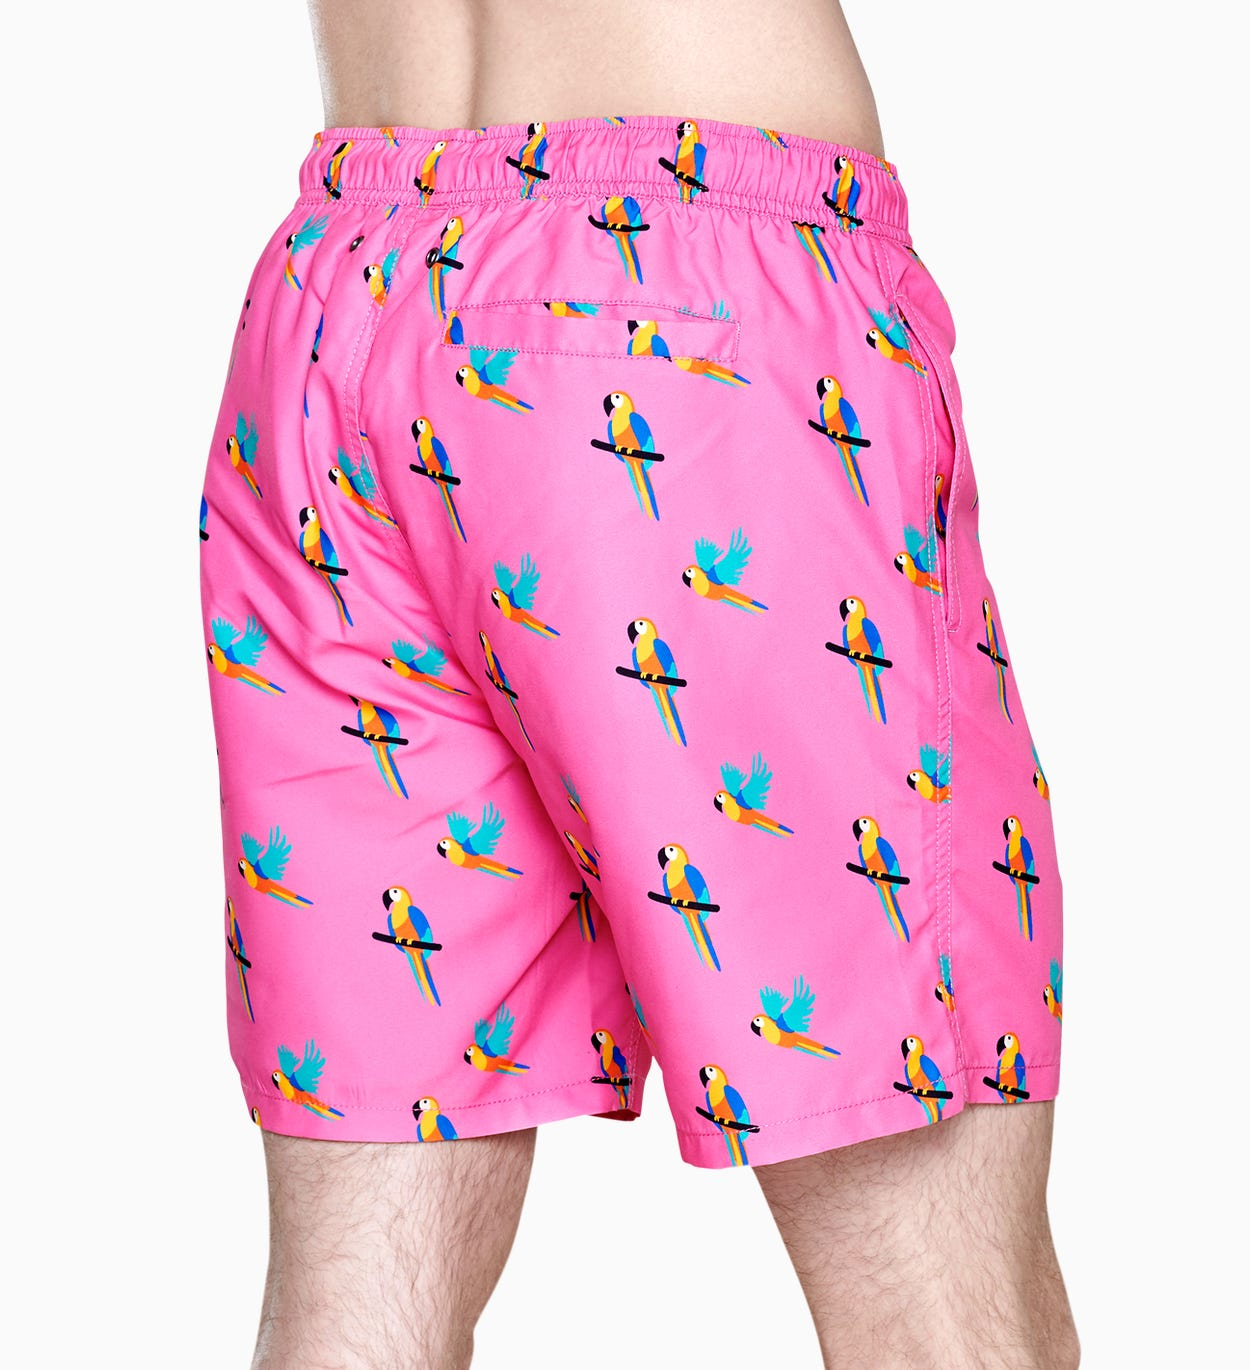 Colourful Swim Shorts: Parrot pattern - Pink | Happy Socks